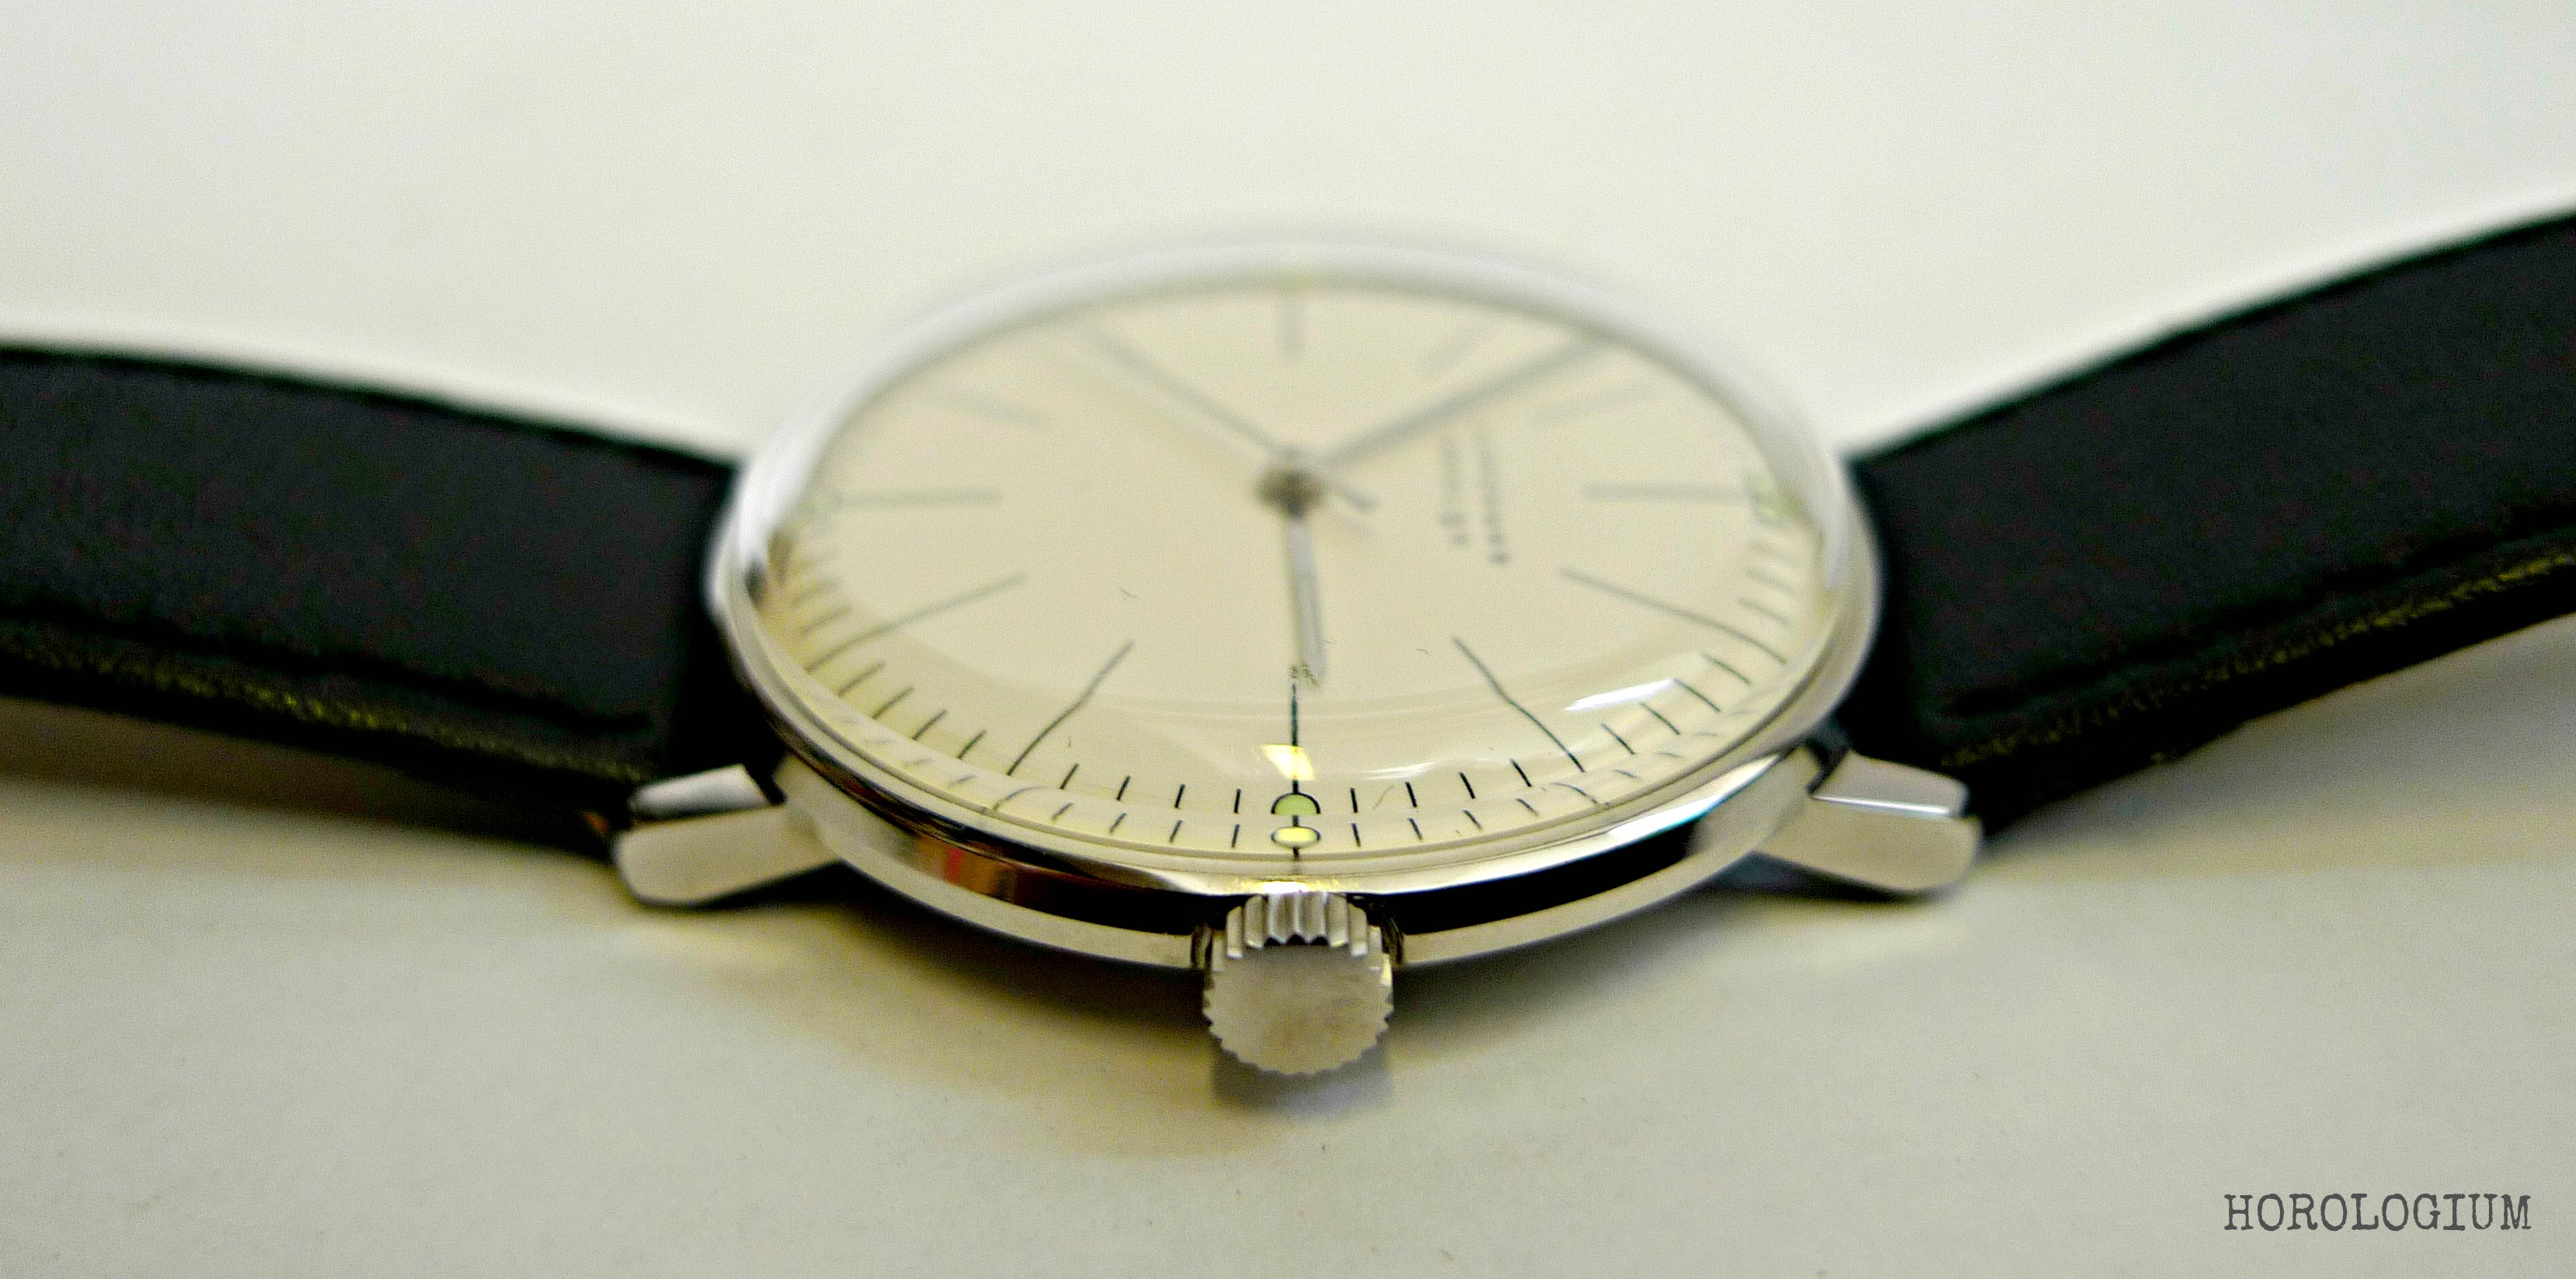 i r mine like pin little reddit watches way of stowa comments ks com the design bauhaus on its collection blues and is really